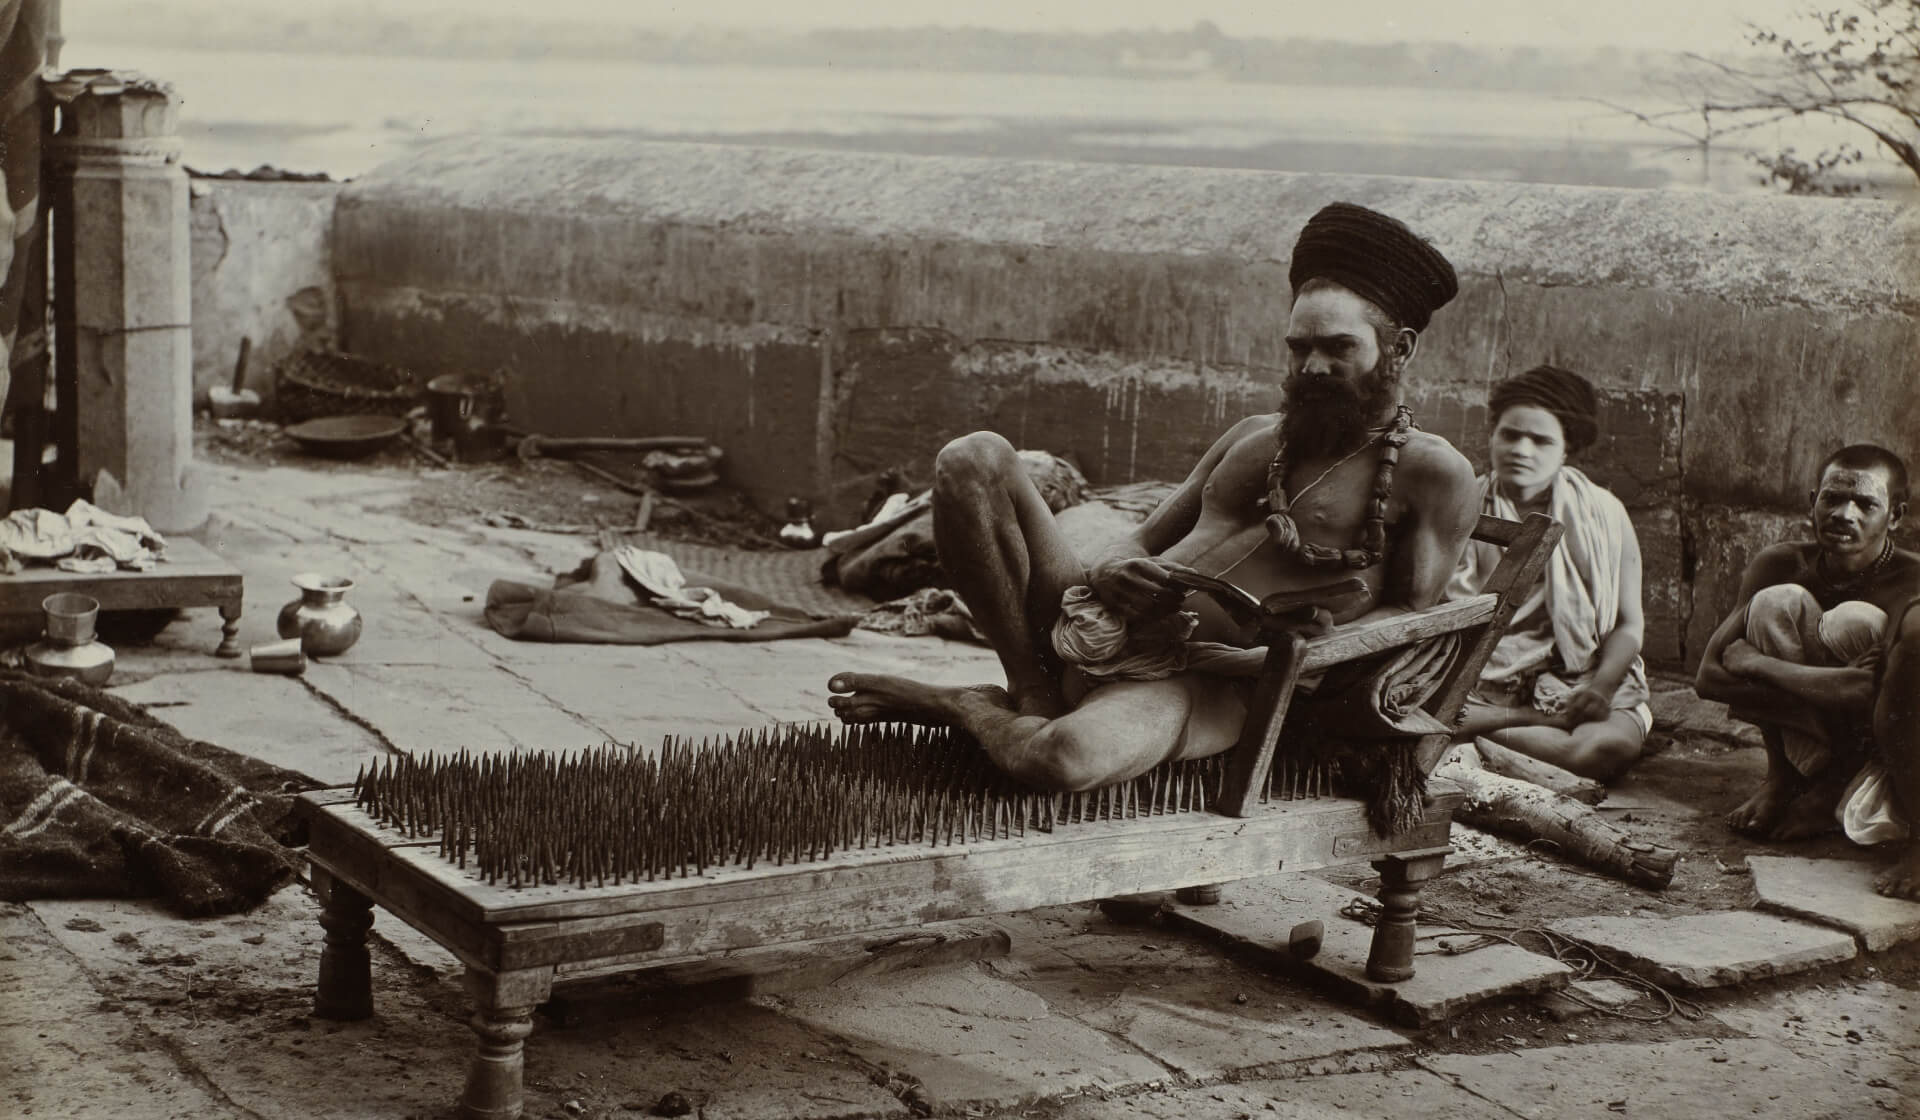 Yogi wearing a turban and a loincloth reclining while reading a book sitting on a bed of nails with two yogis looking on in the background